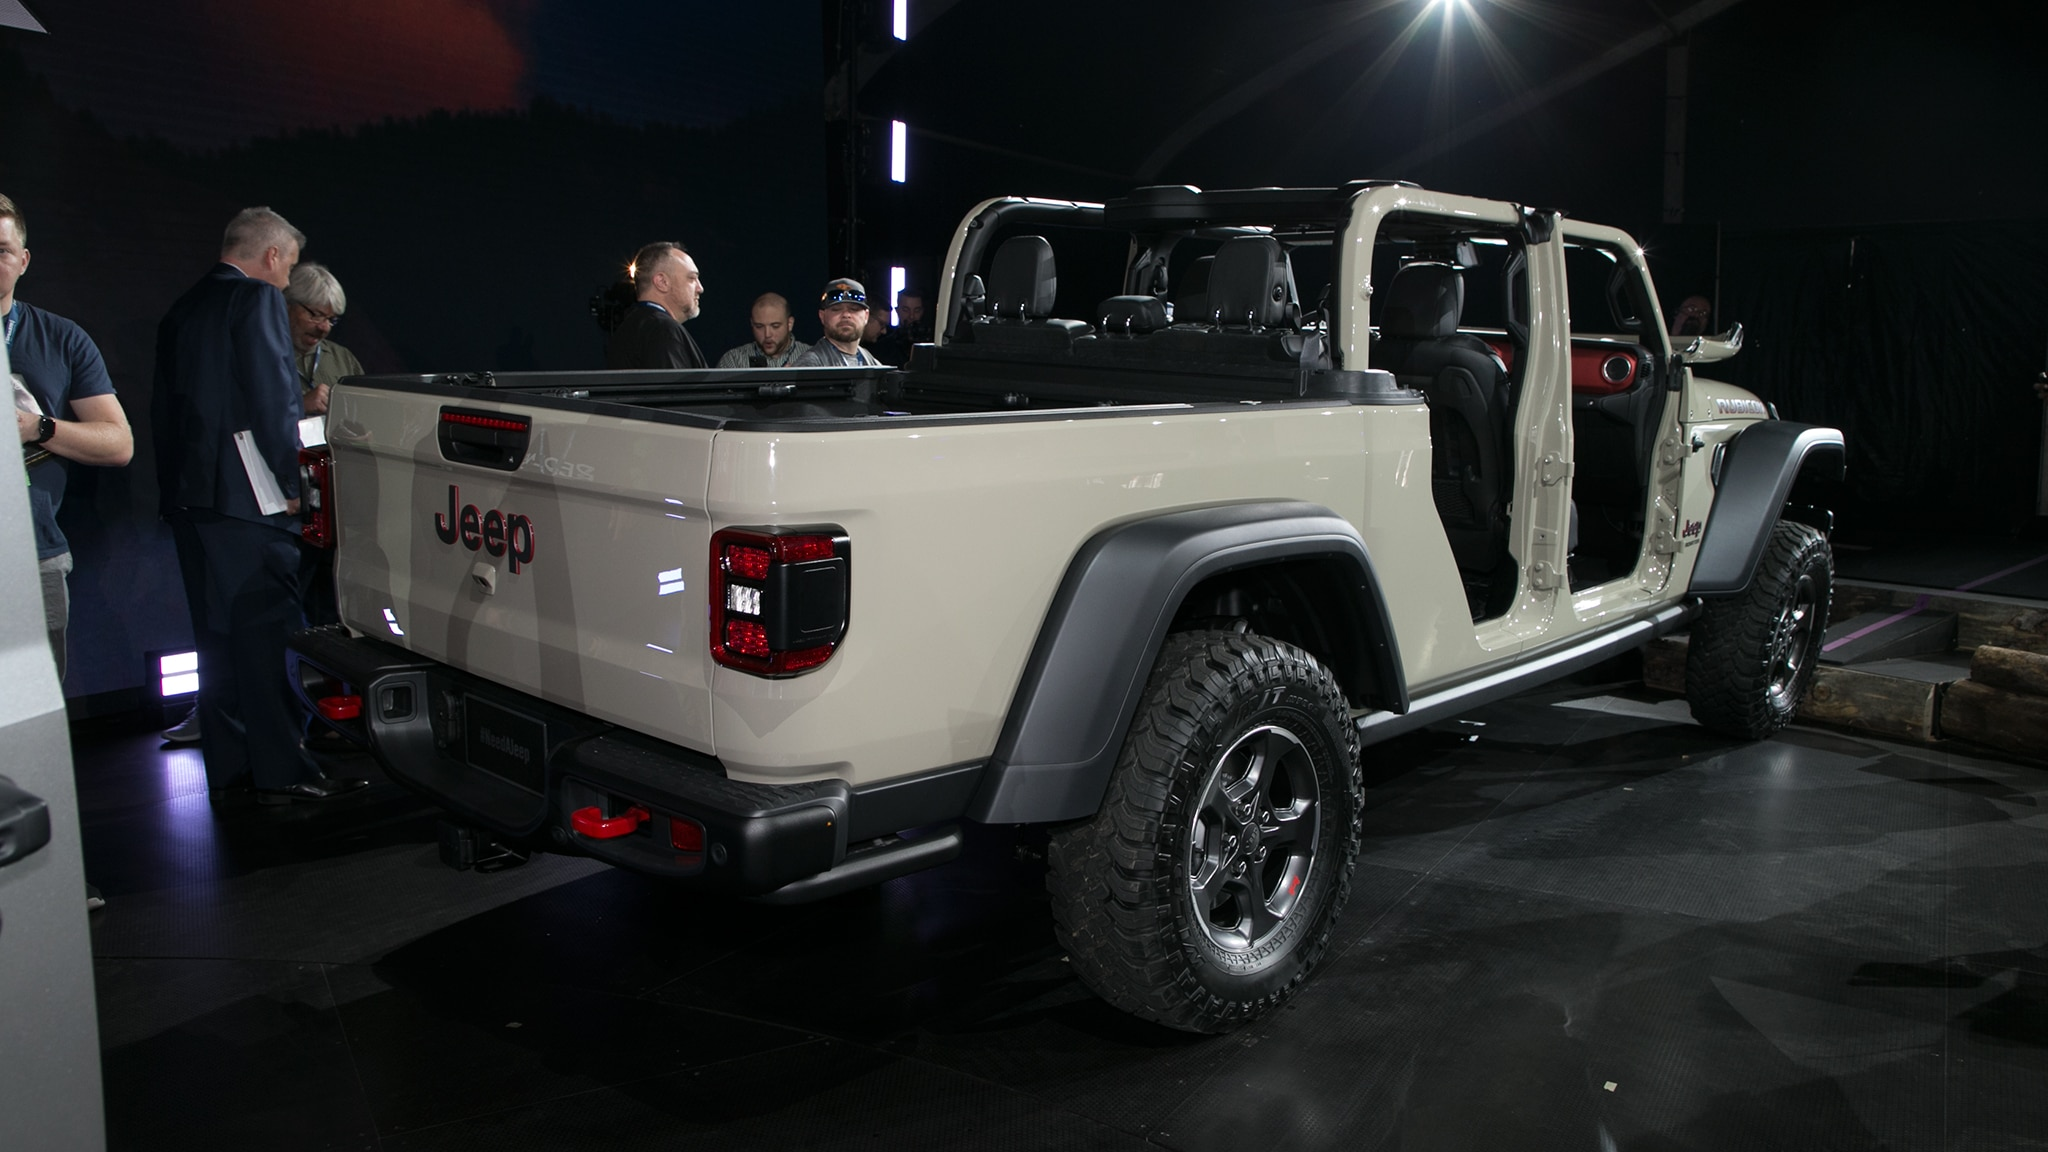 2020 Jeep Gladiator Exterior Dimensions - Used Car Reviews ...